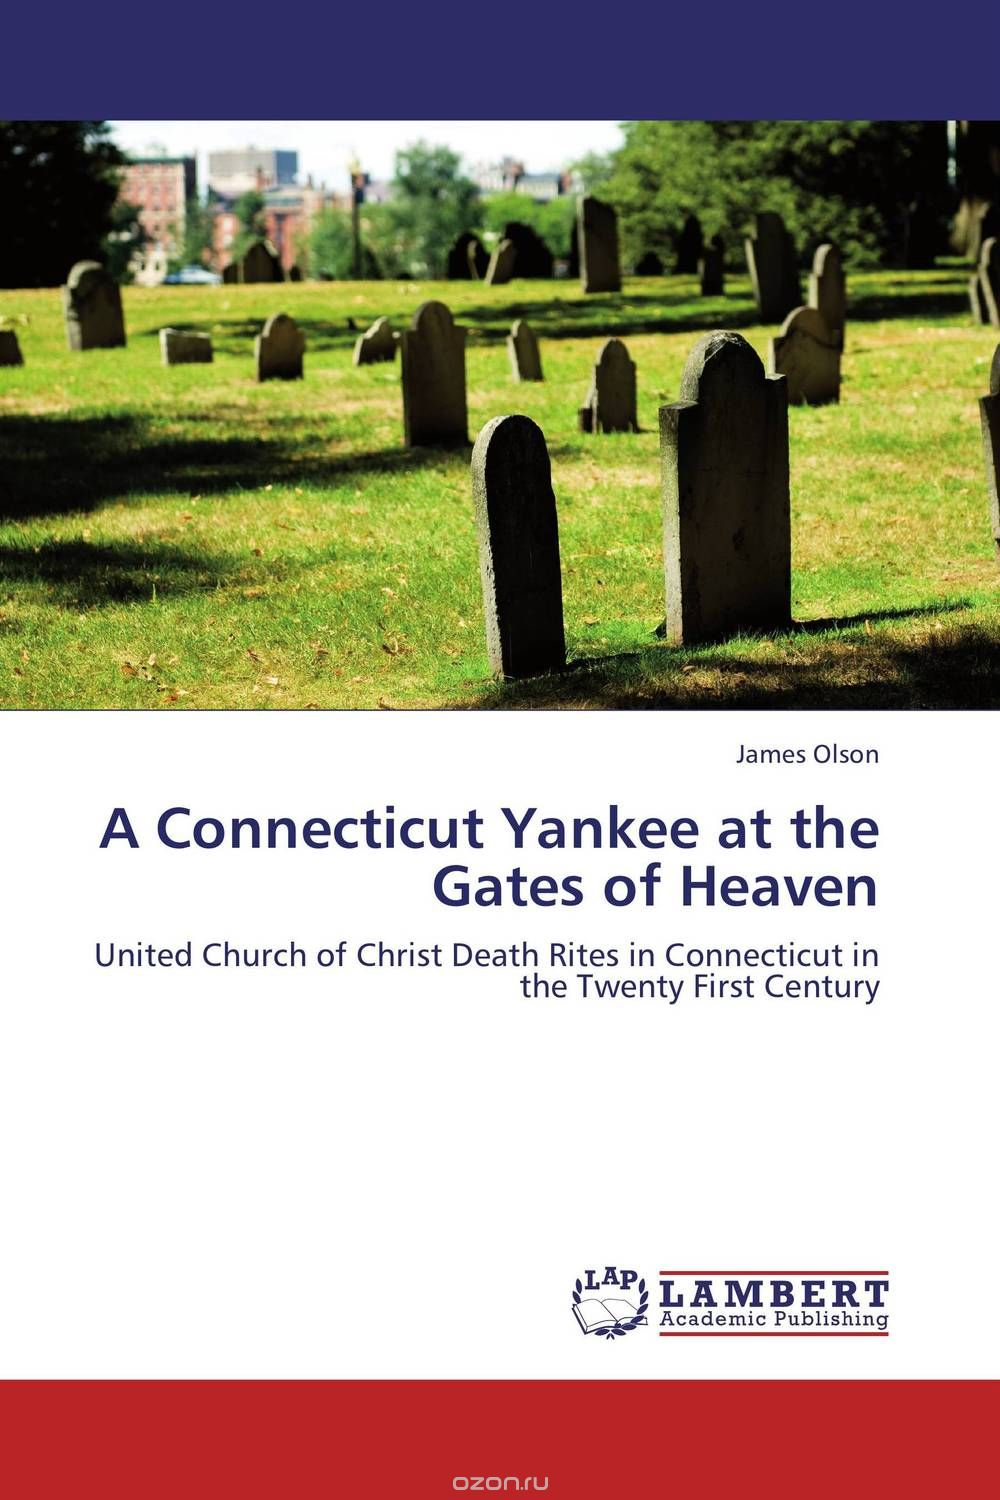 A Connecticut Yankee at the Gates of Heaven